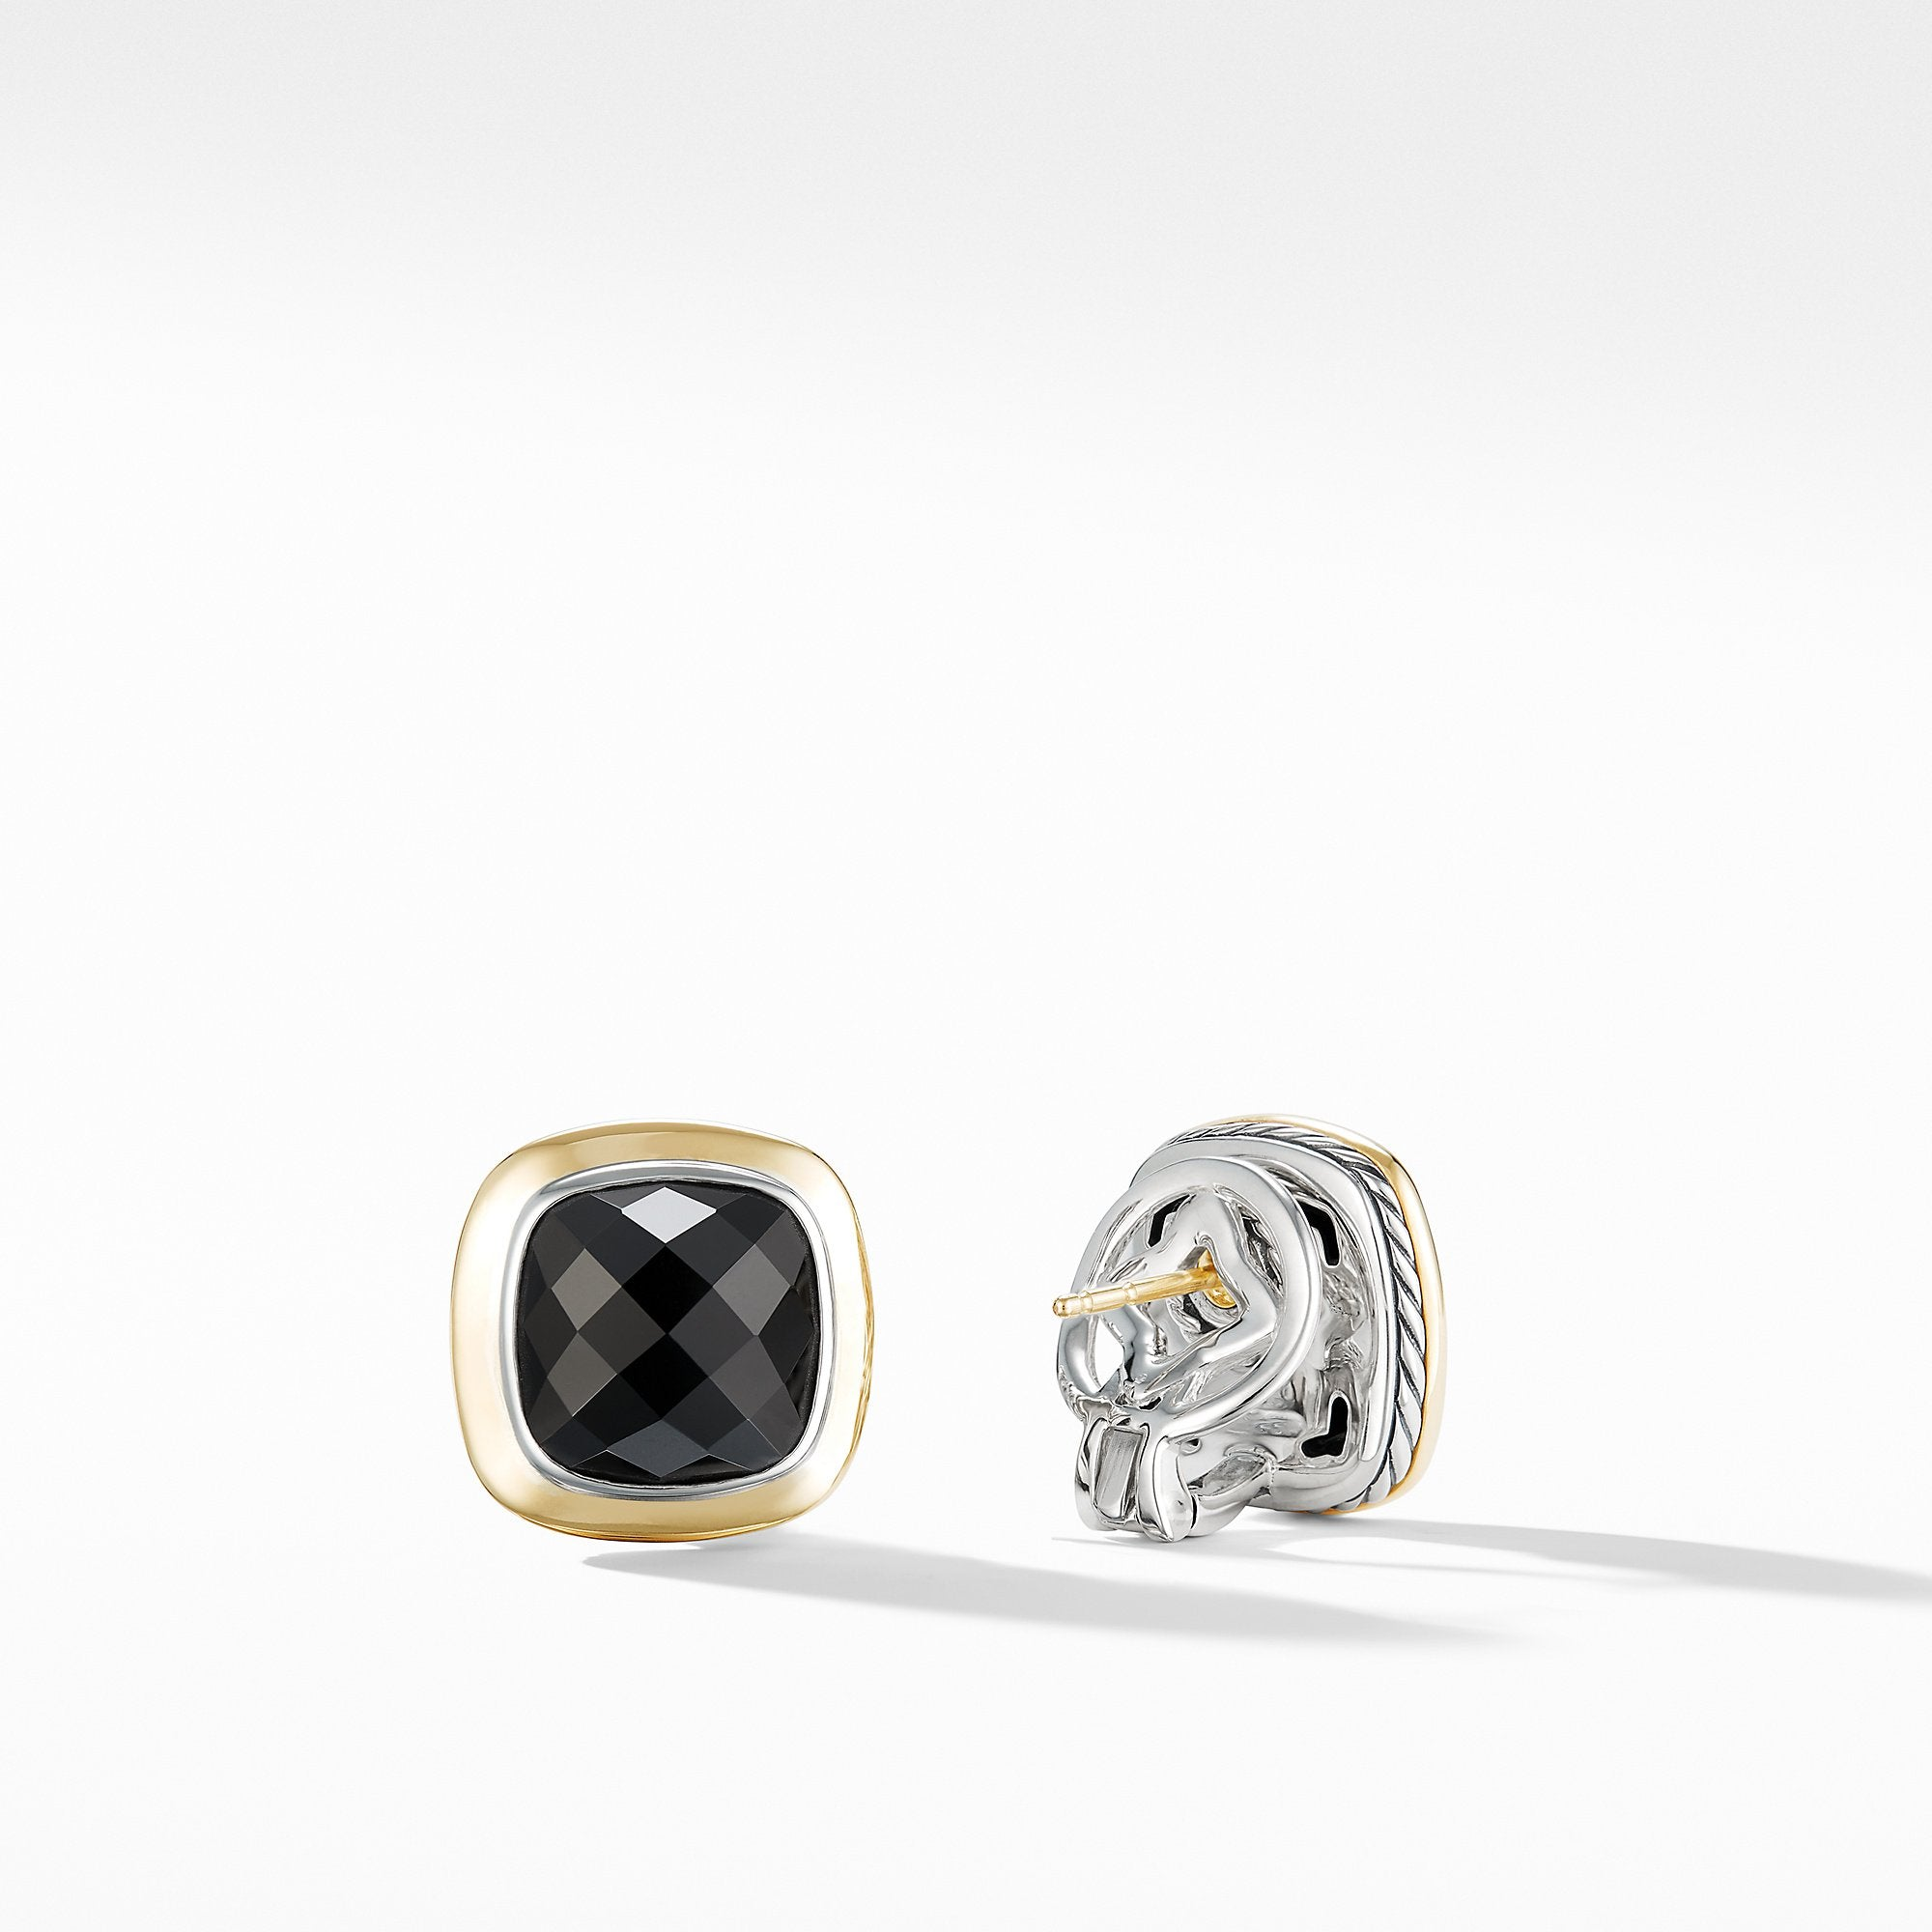 Albion® Stud Earrings with 18K Gold and Black Onyx